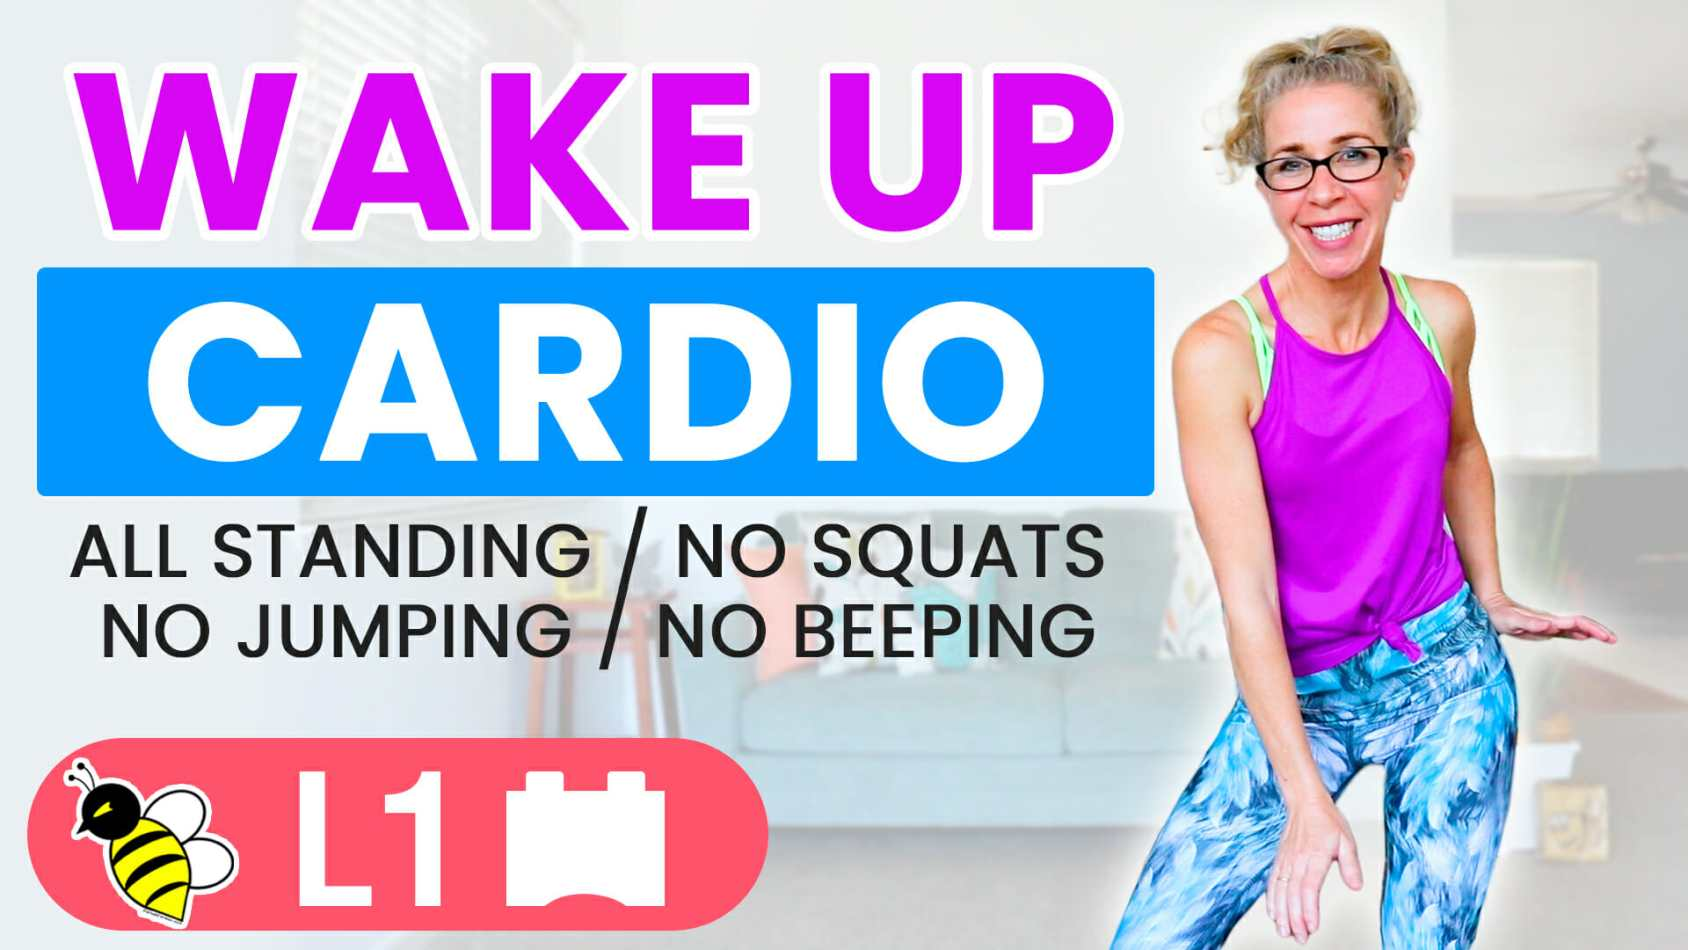 Wake up CARDIO 10 minute LOW IMPACT start to your day